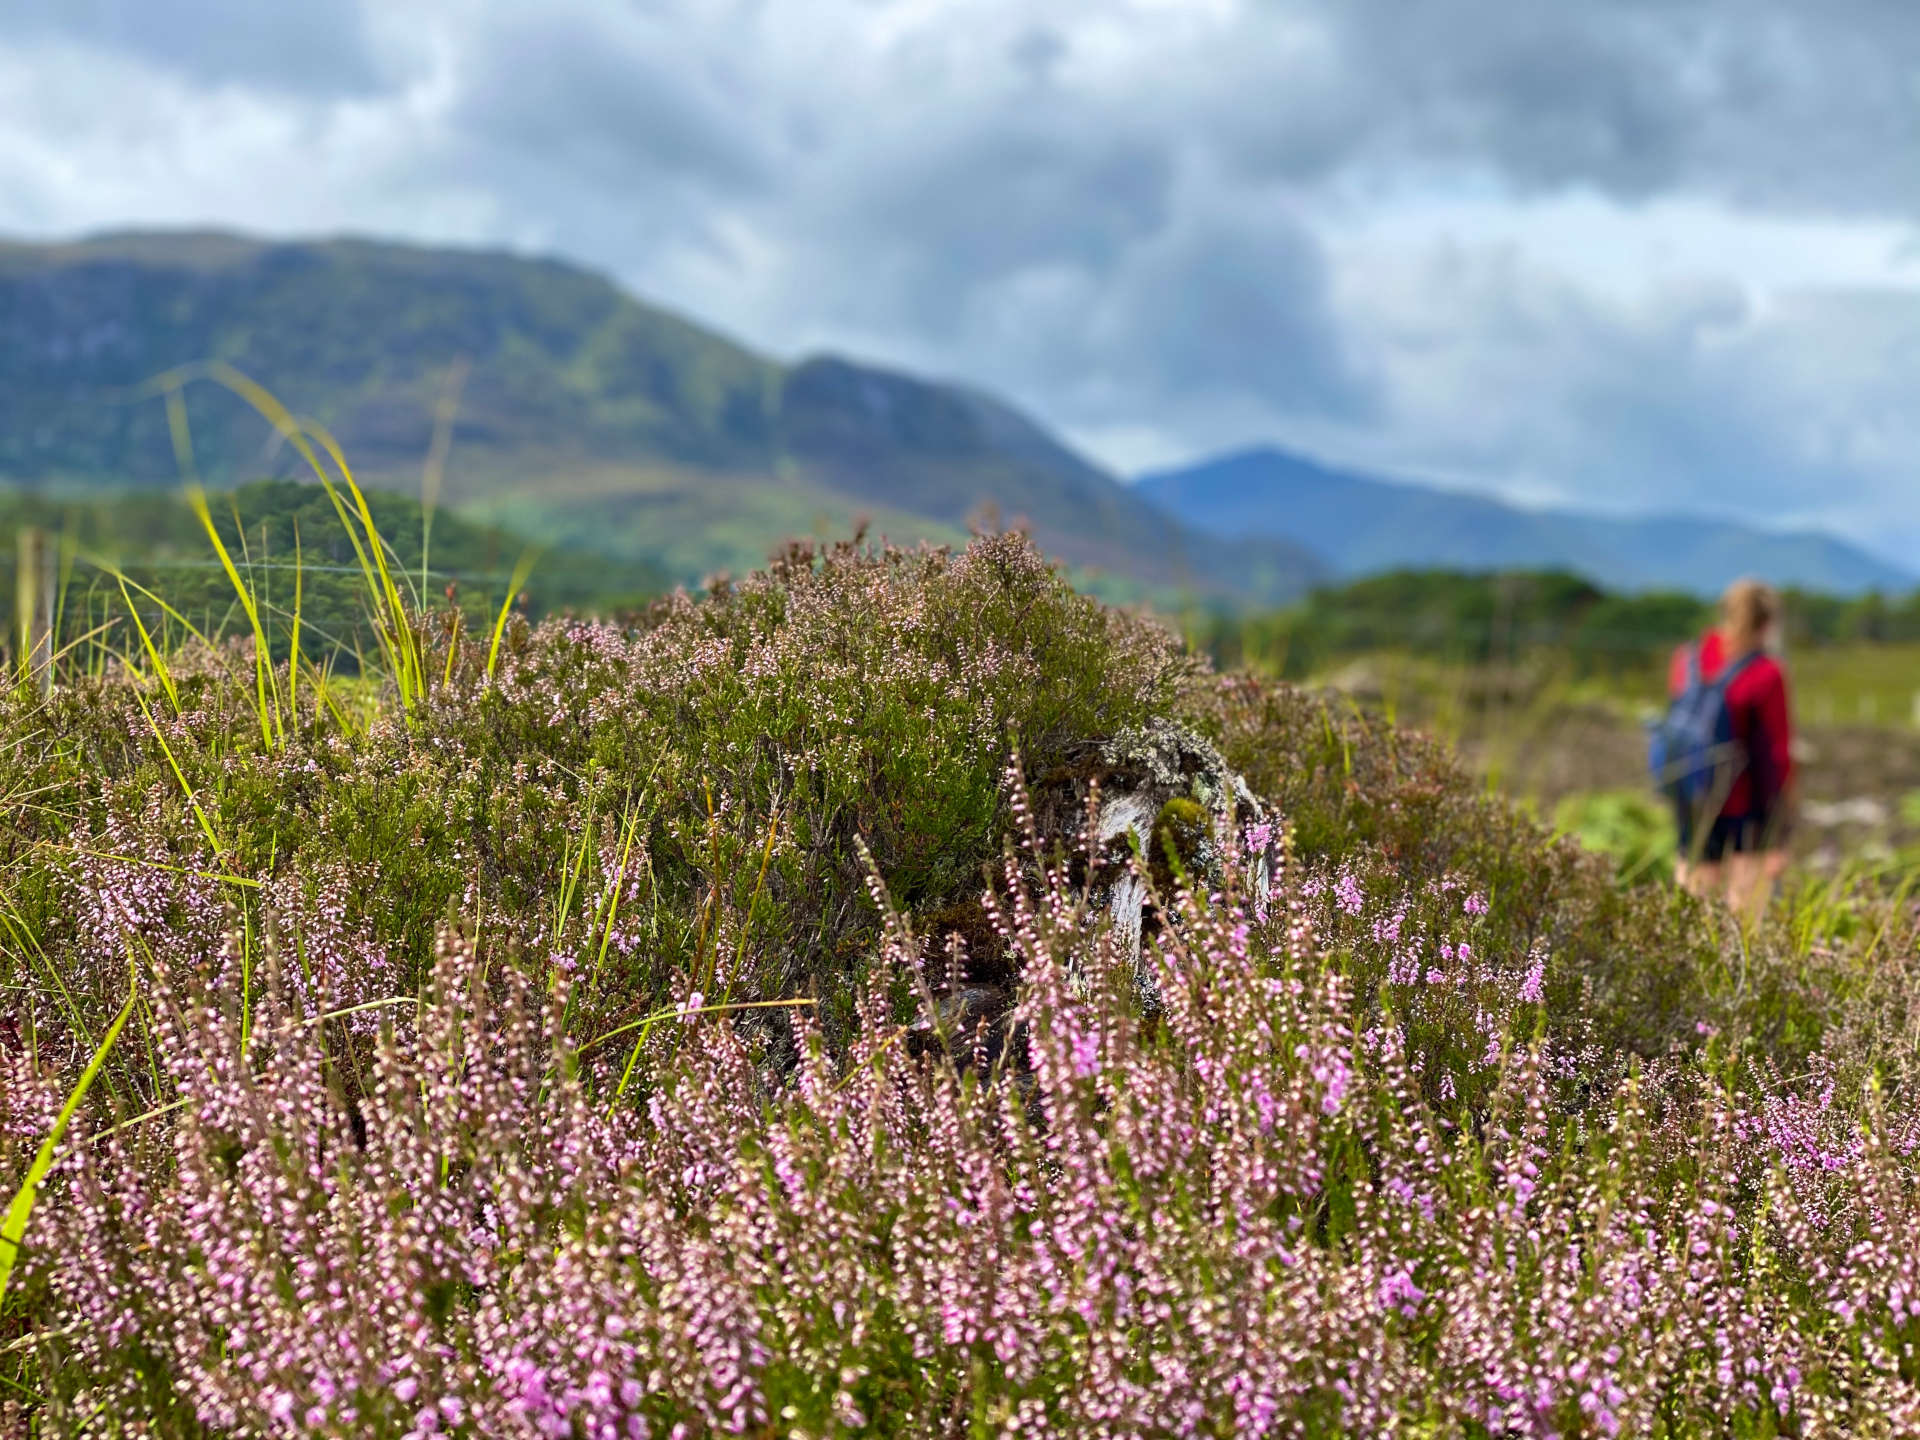 view of heather in a field